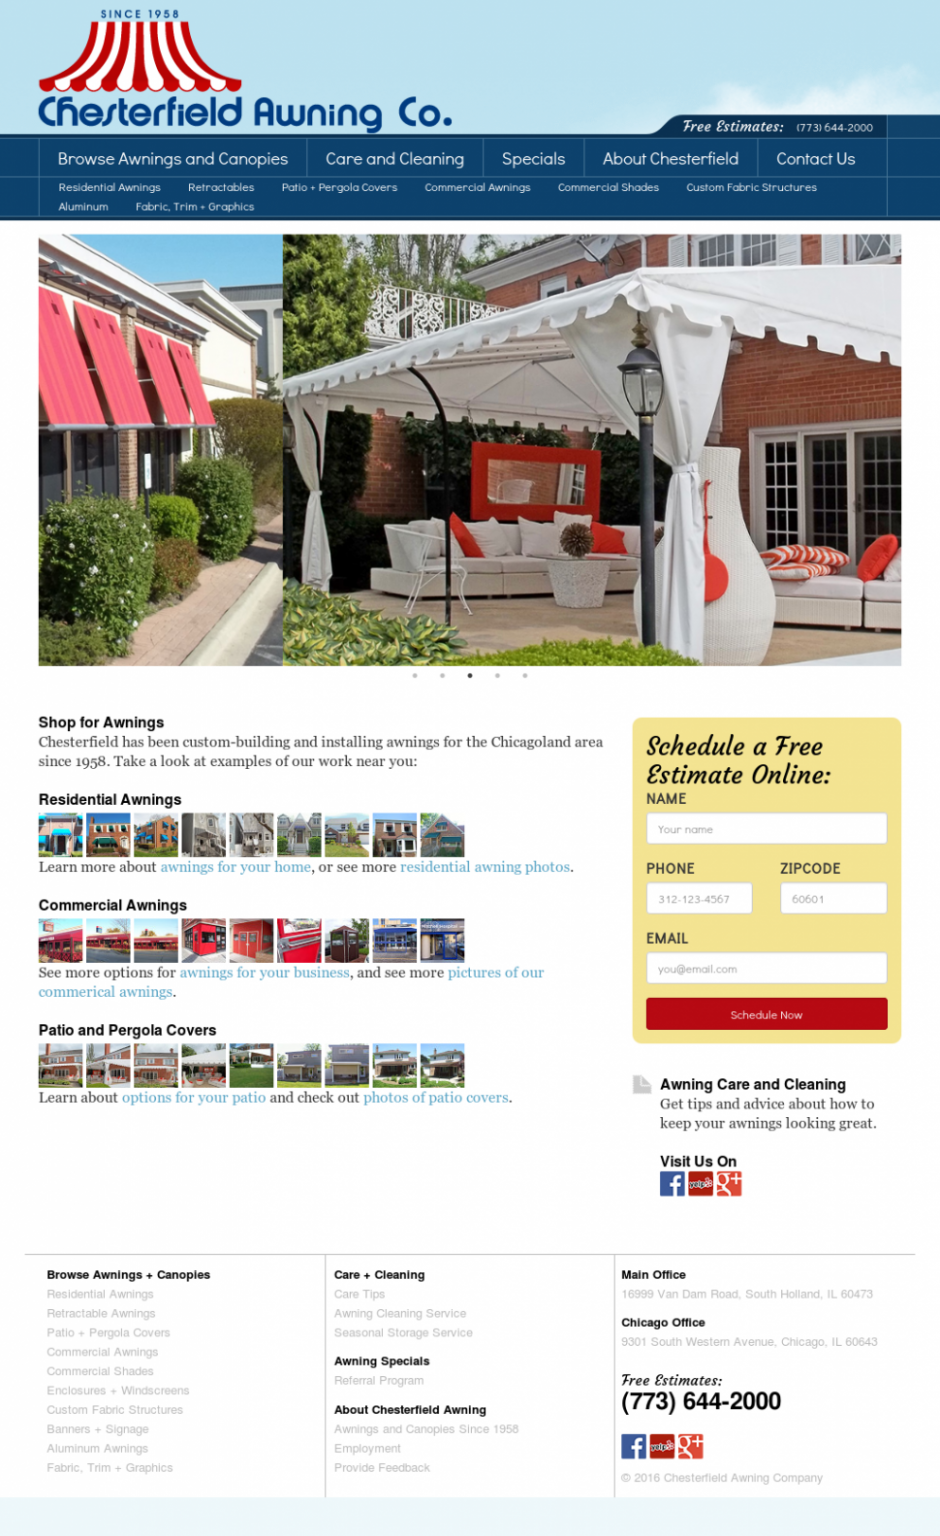 Chesterfield Awnings South Holland Il Silver Top Awning ..